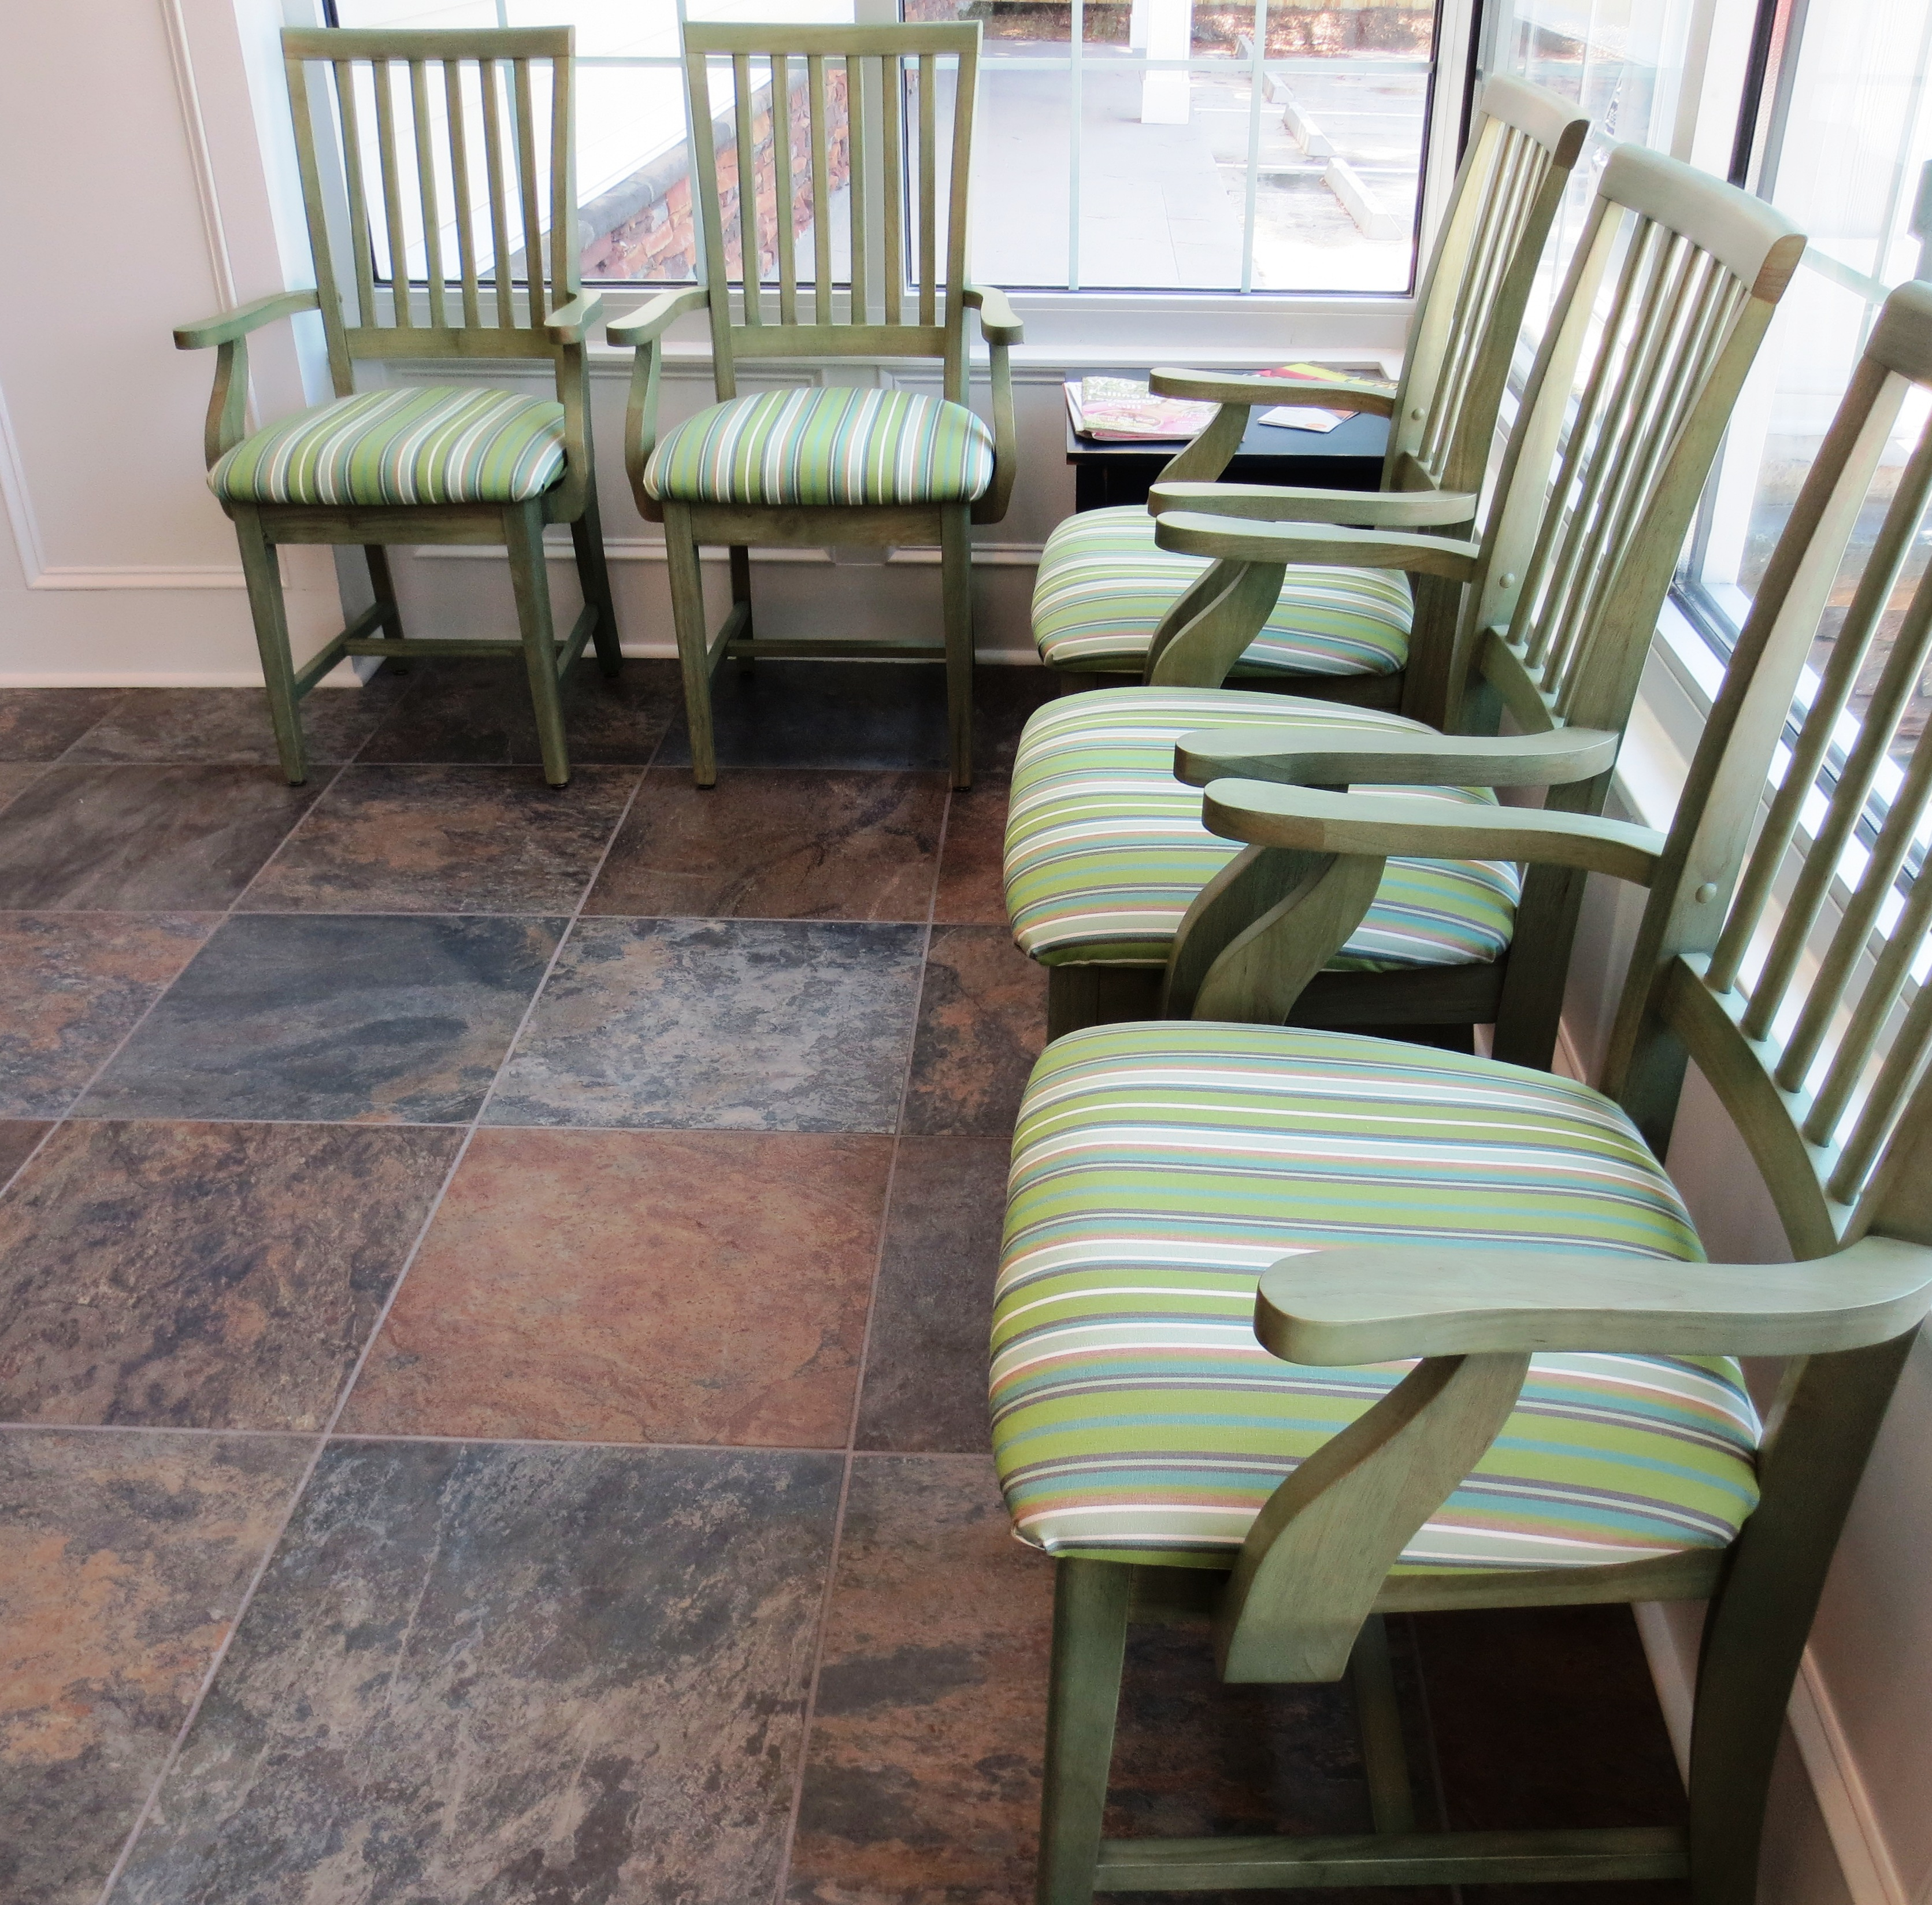 designing an eco-friendly medical office waiting room